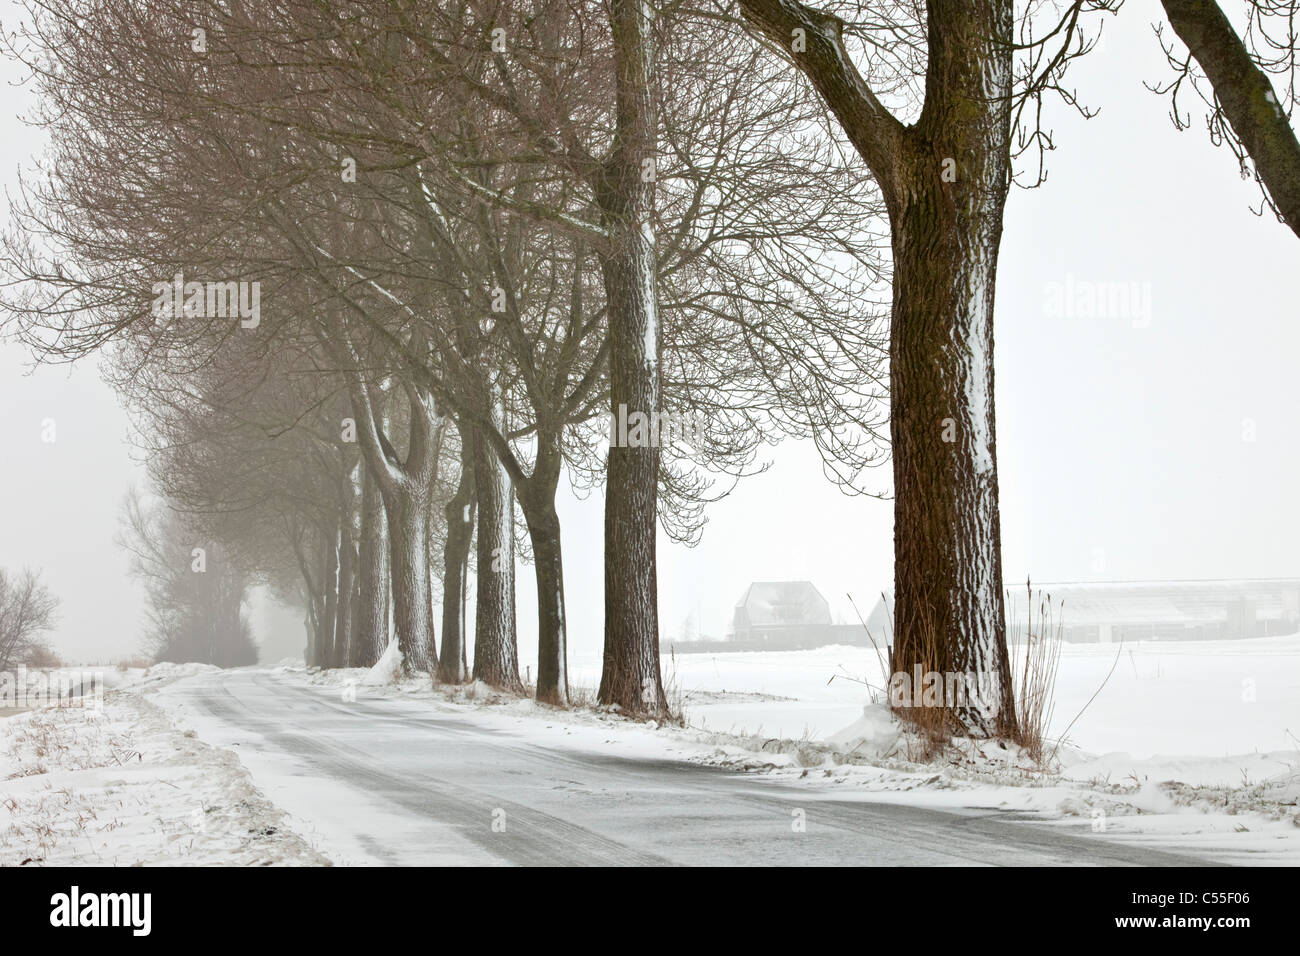 The Netherlands, Garrelsweer, Trees in snow along country road. - Stock Image